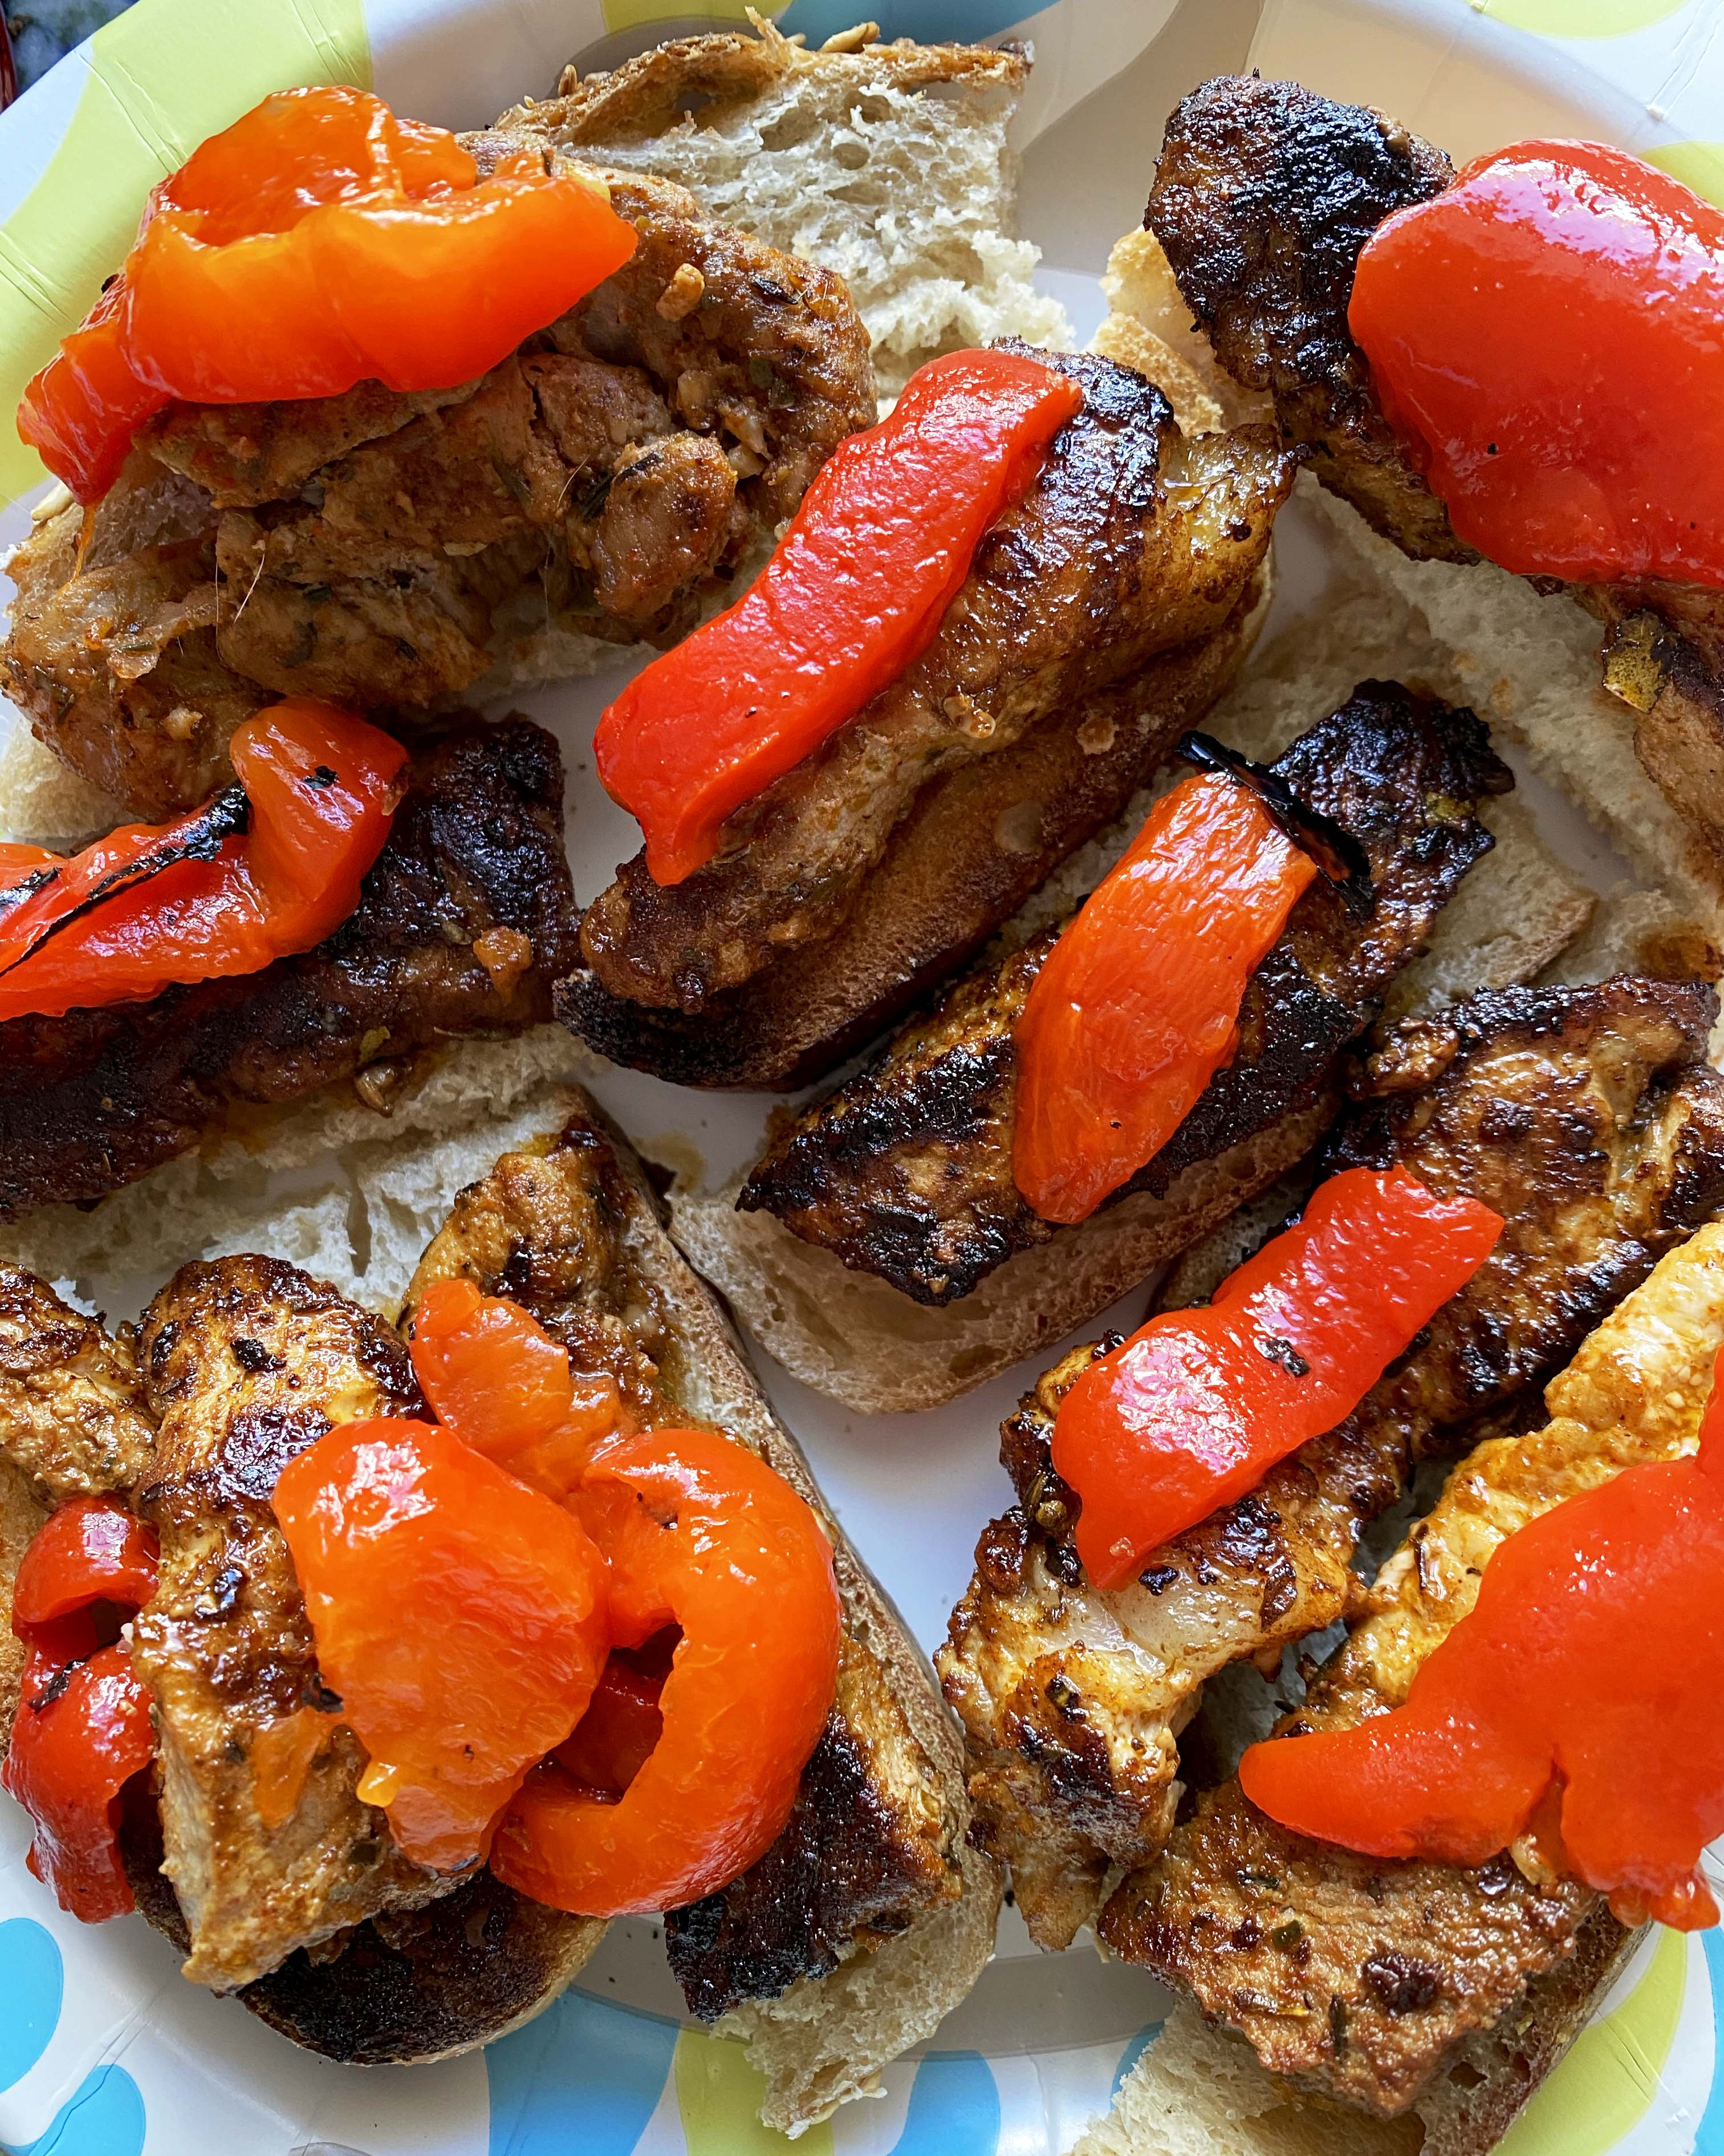 Marinated Pork Canapes topped with red peppers.